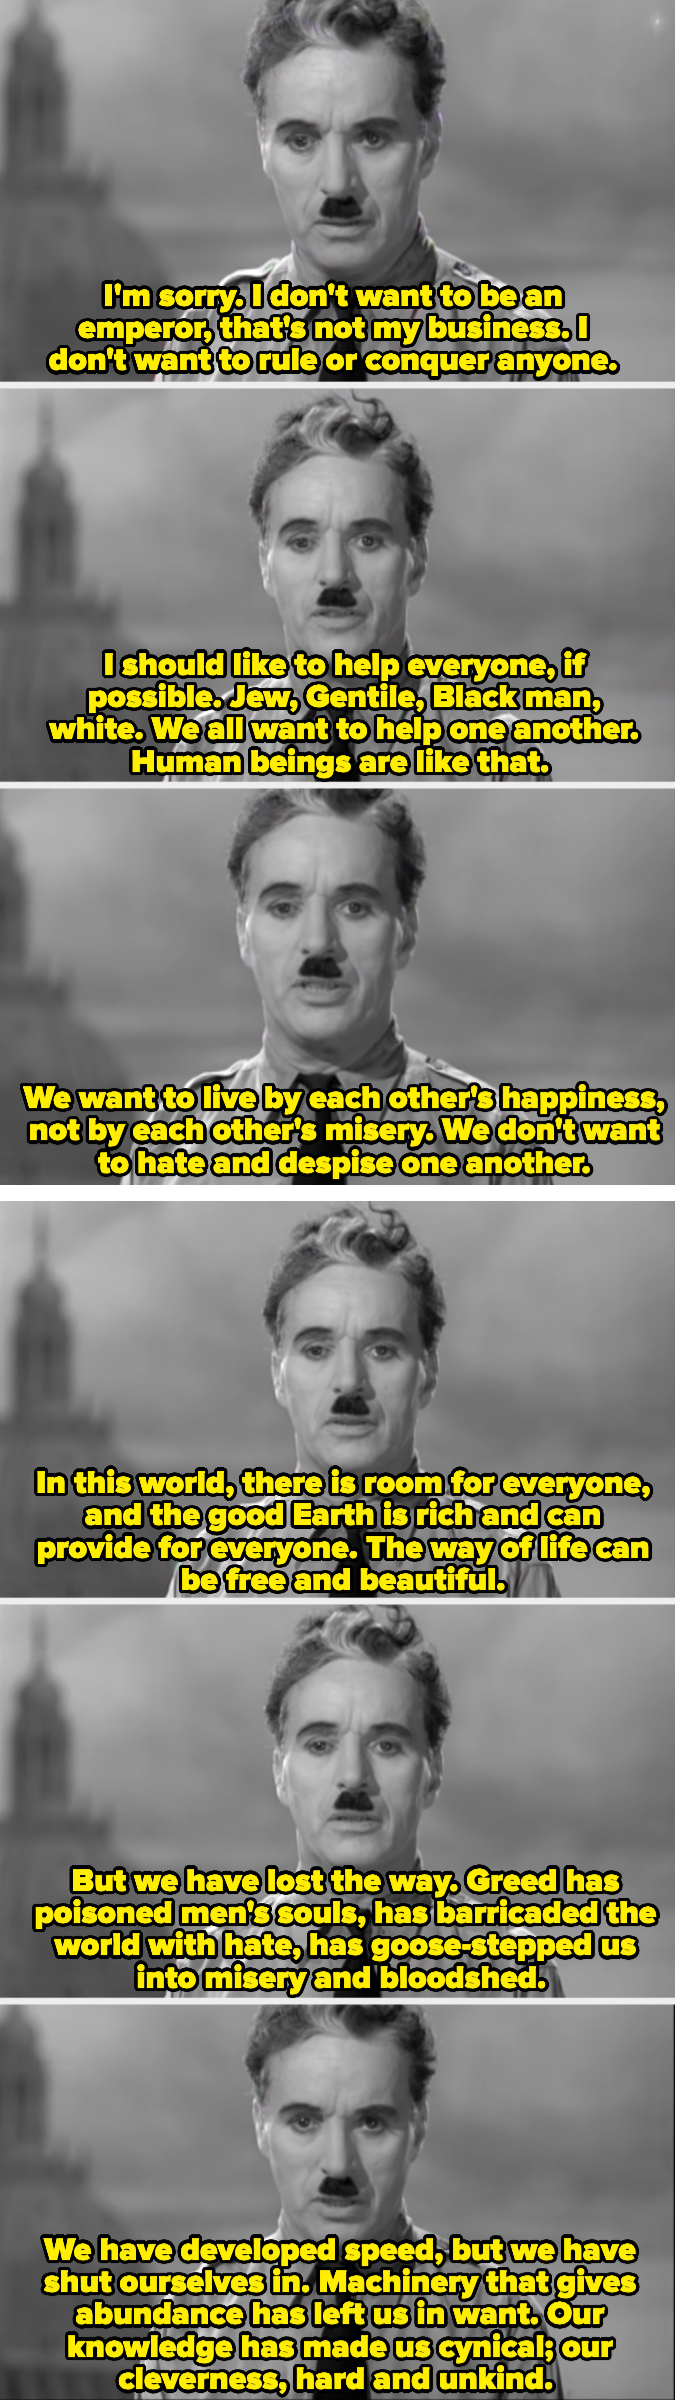 Charlie Chaplin talks about how greed has ruined humanity, and how our natural instinct is to take care of one another